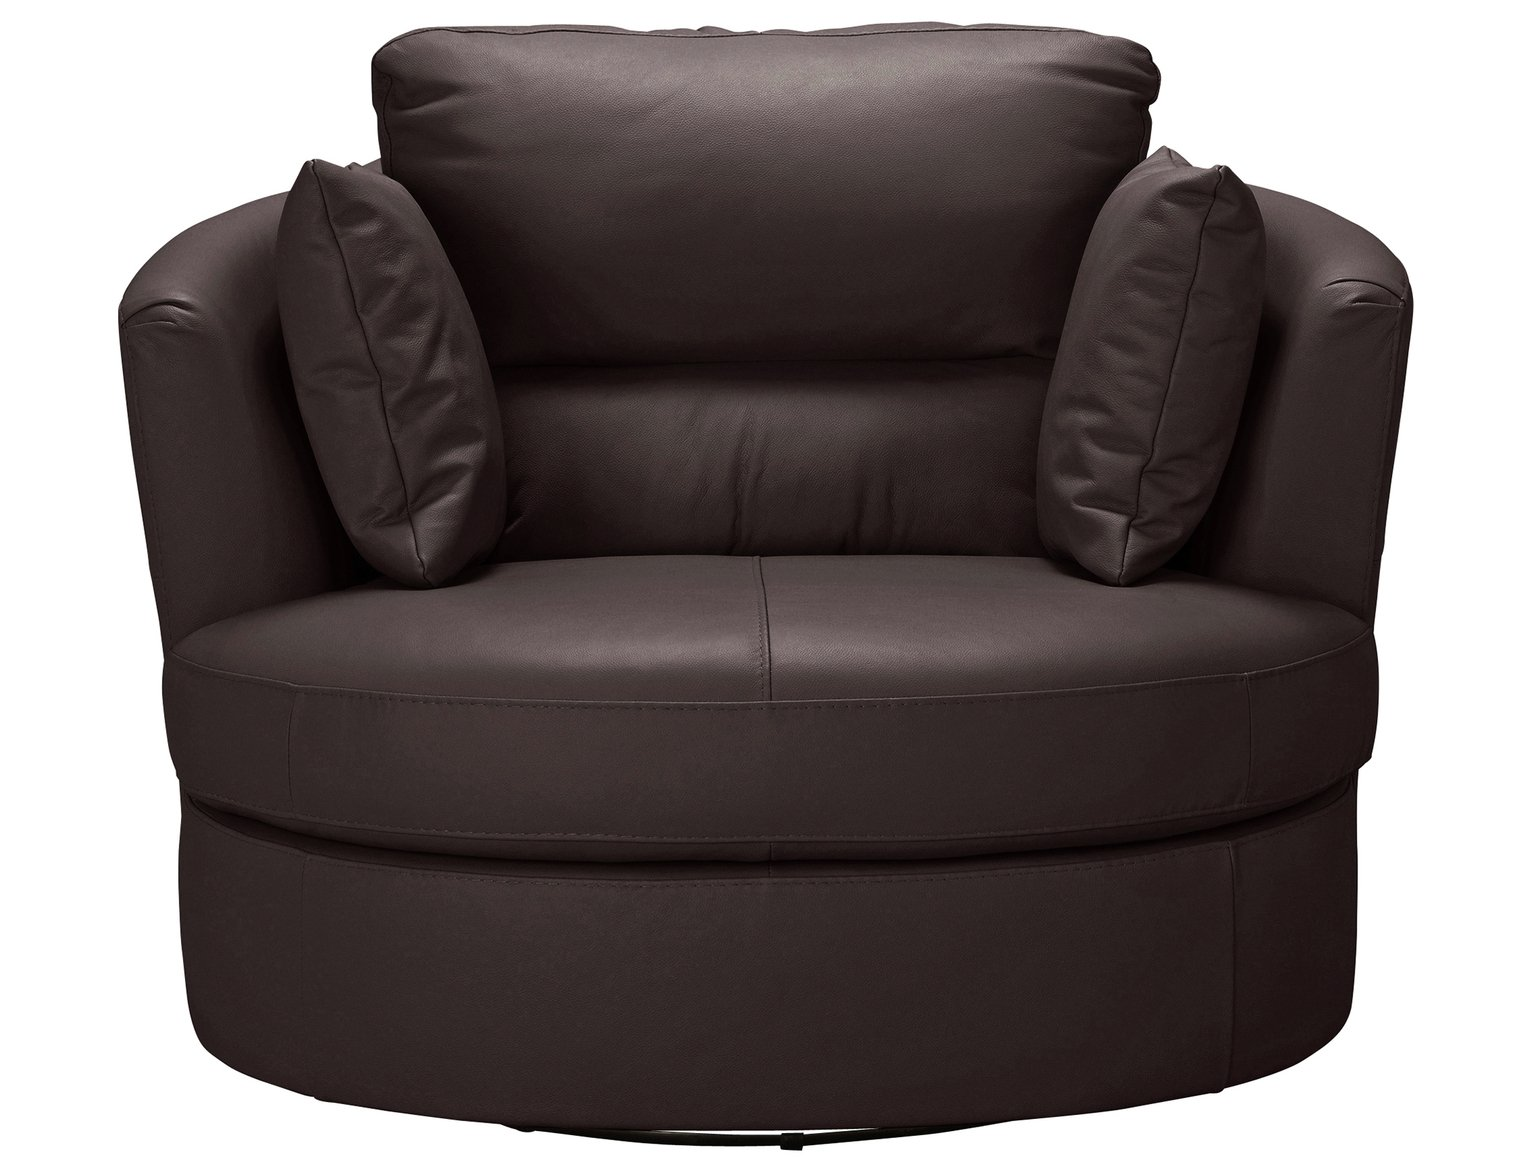 Argos Home Trieste Leather Swivel Chair - Dark Brown